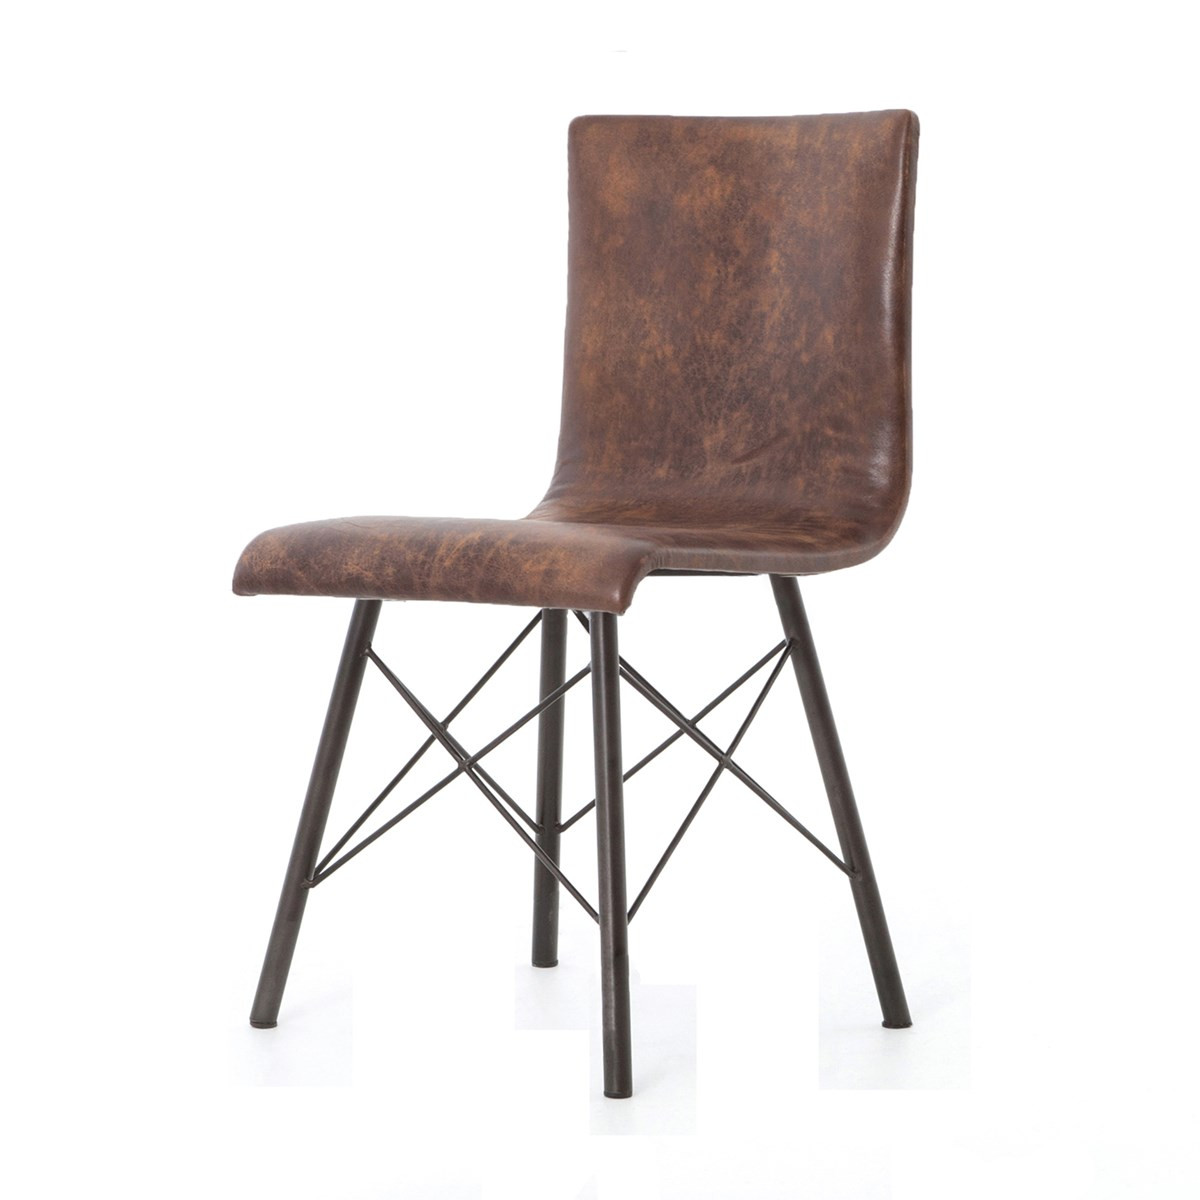 diaw distressed brown leather dining chair  zin home - midcentury modern diaw distressed brown leather dining chair